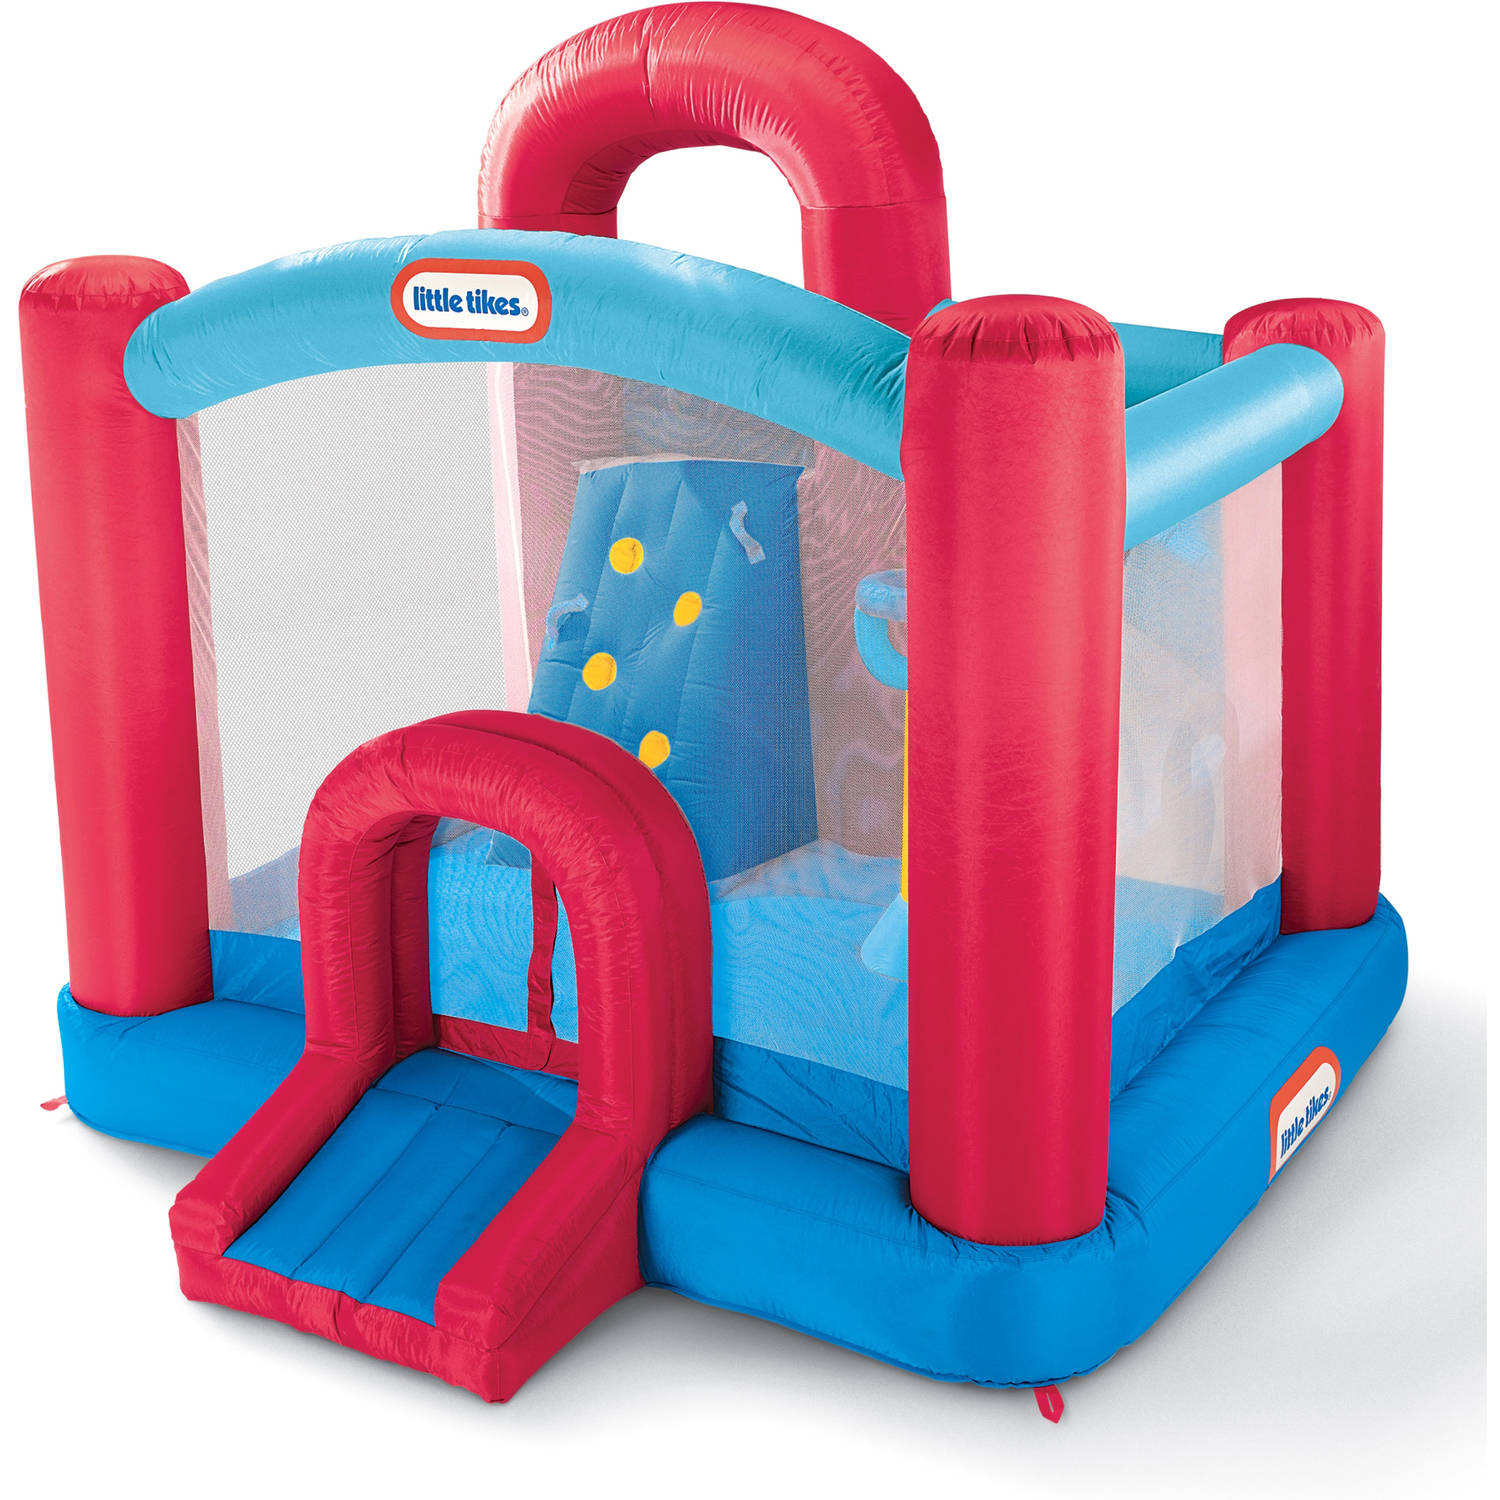 Little Tikes Super Spiral Bouncer by MGA Entertainment